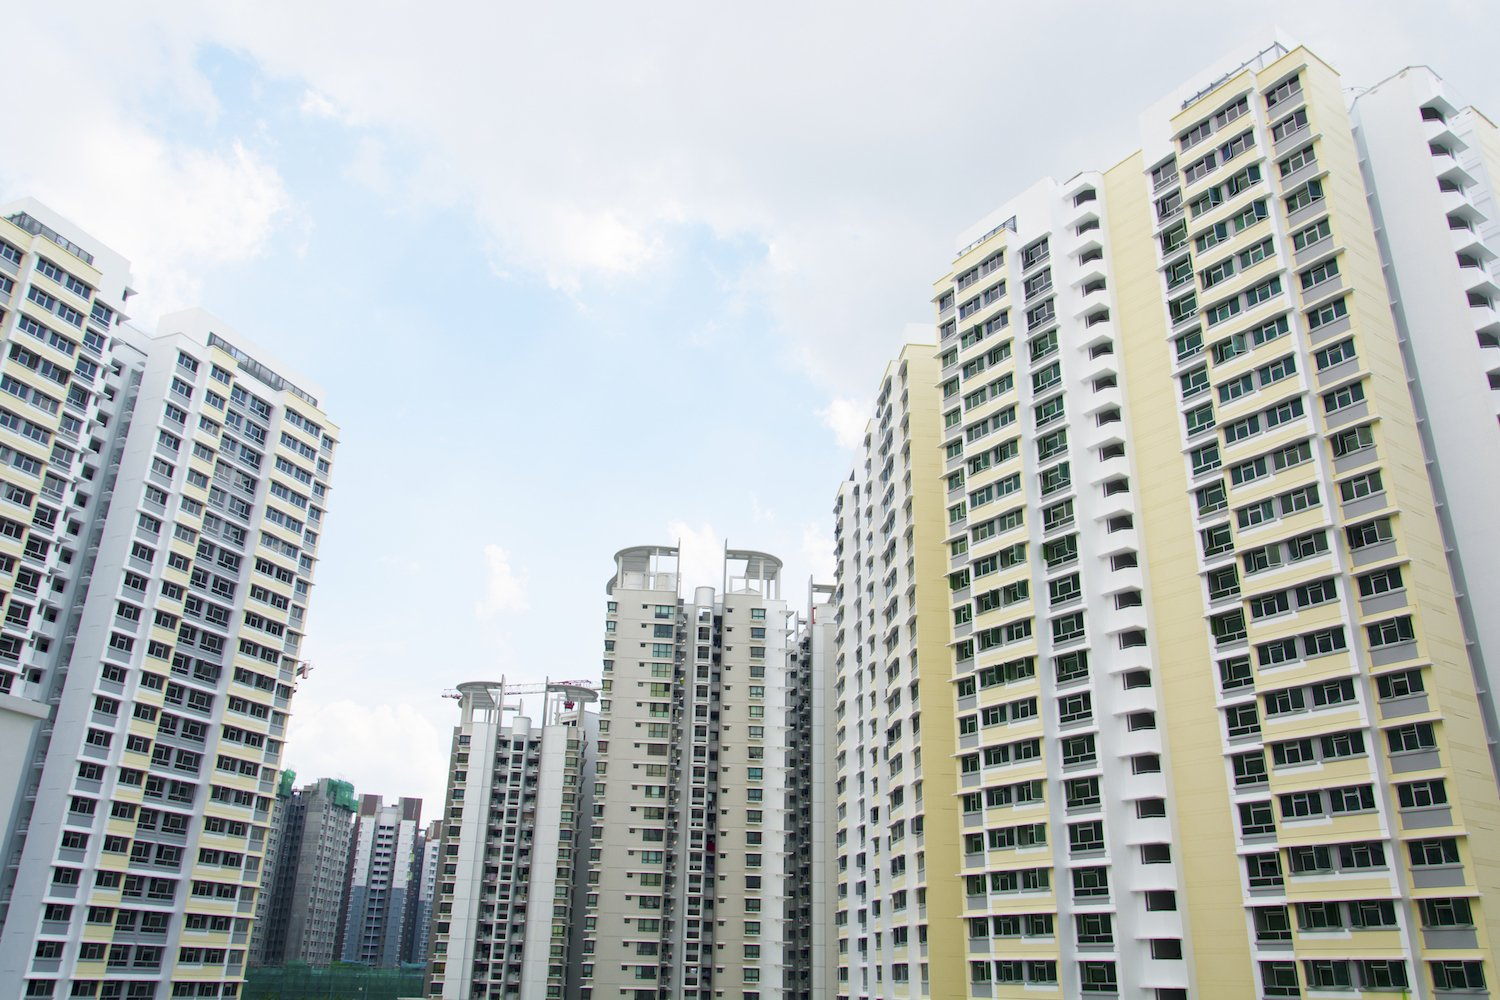 singapore permanent resident cannot buy BTO flat